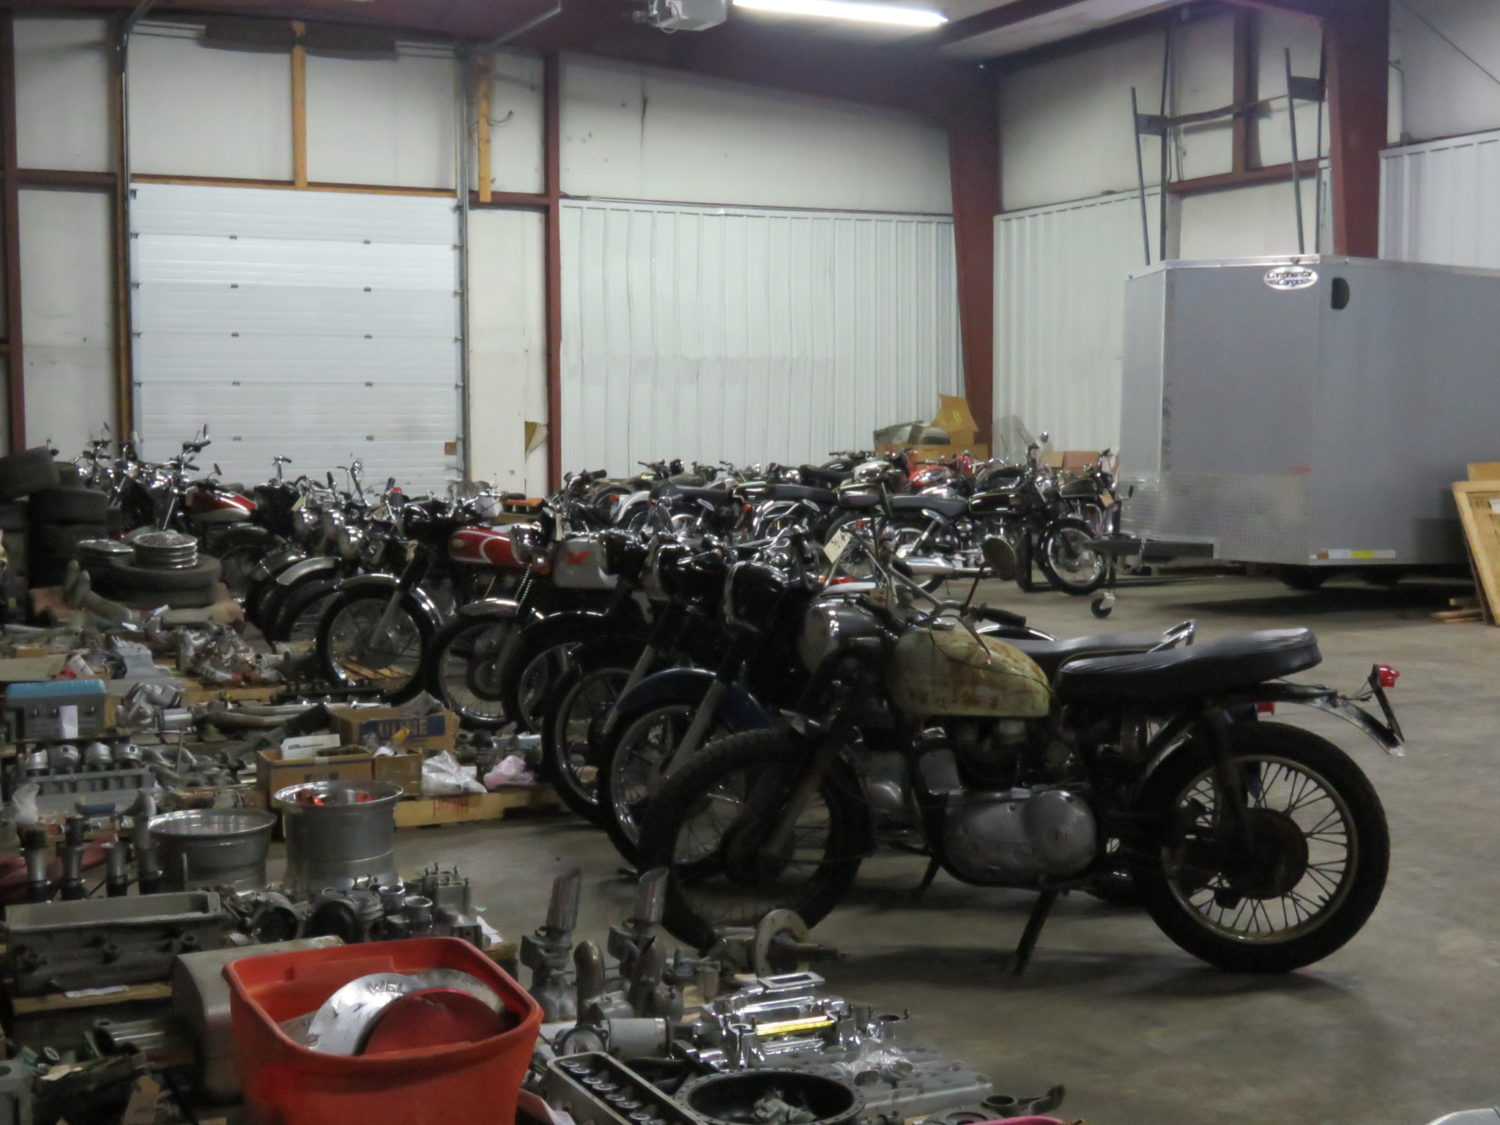 Amazing Vintage Motorcycles, Race Cars, Collector Cars & Parts! The JAB Collection - image 8